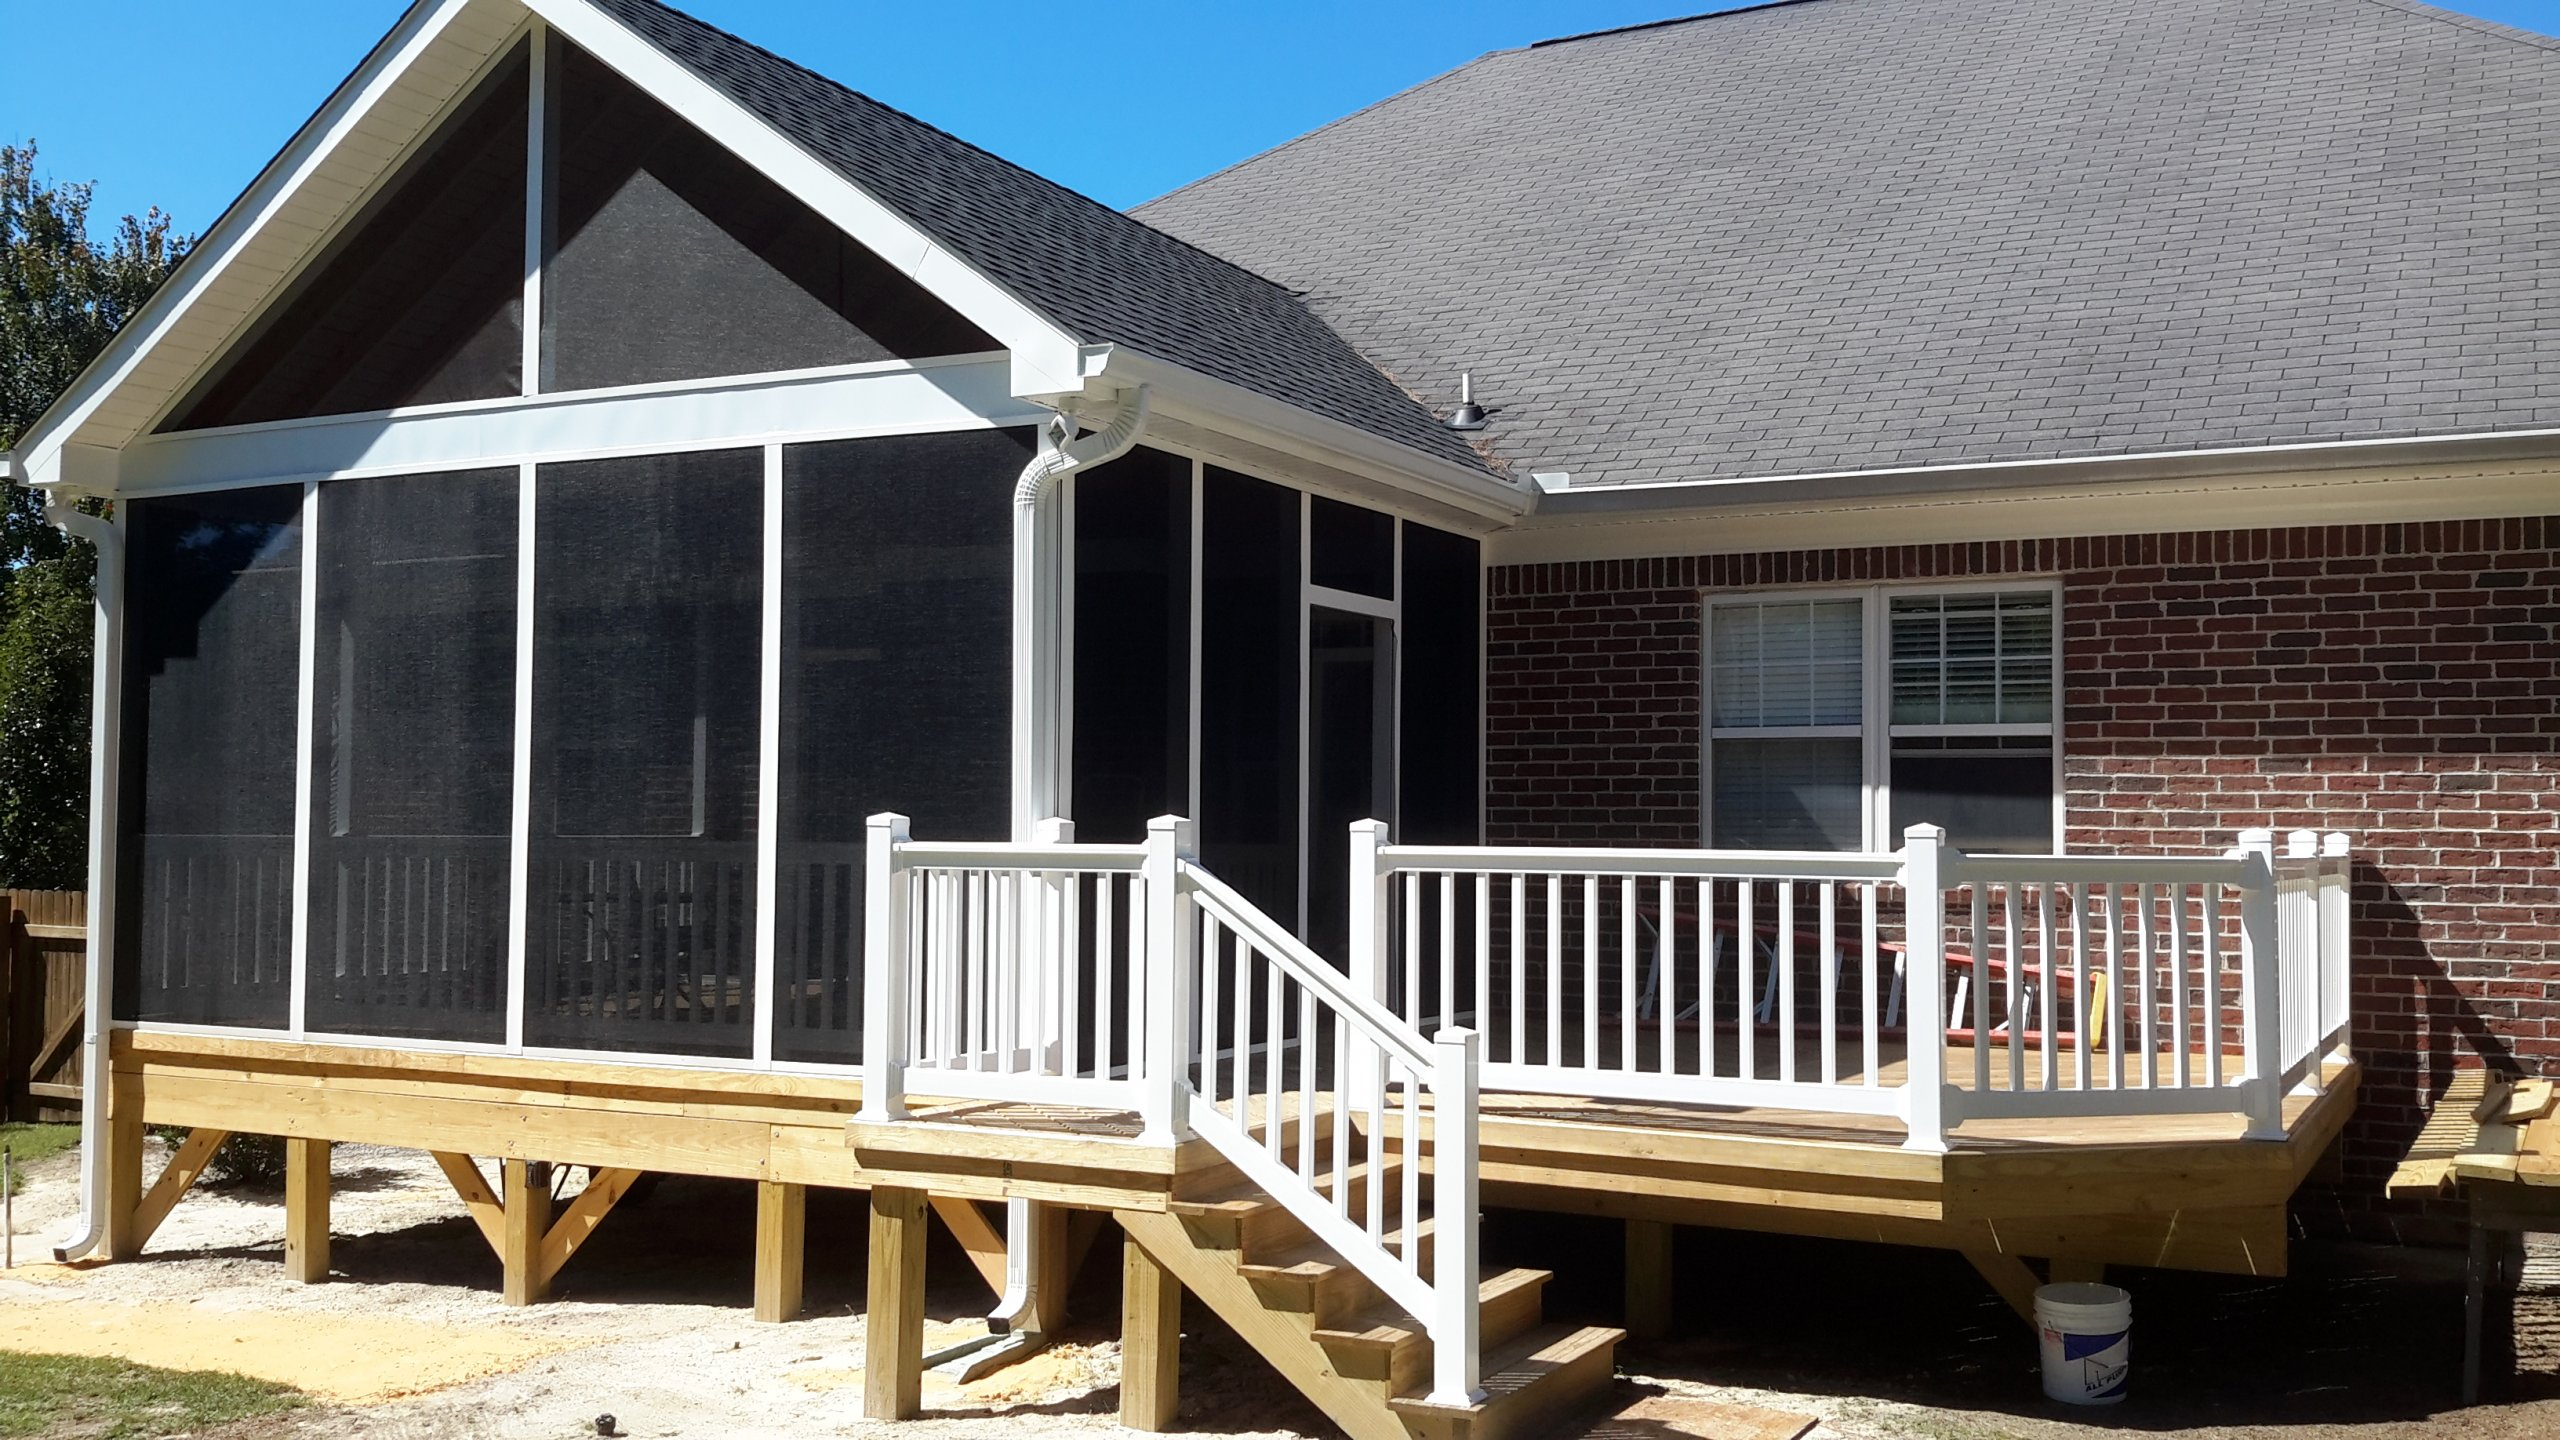 How to Convert a Deck to a Screened Porch